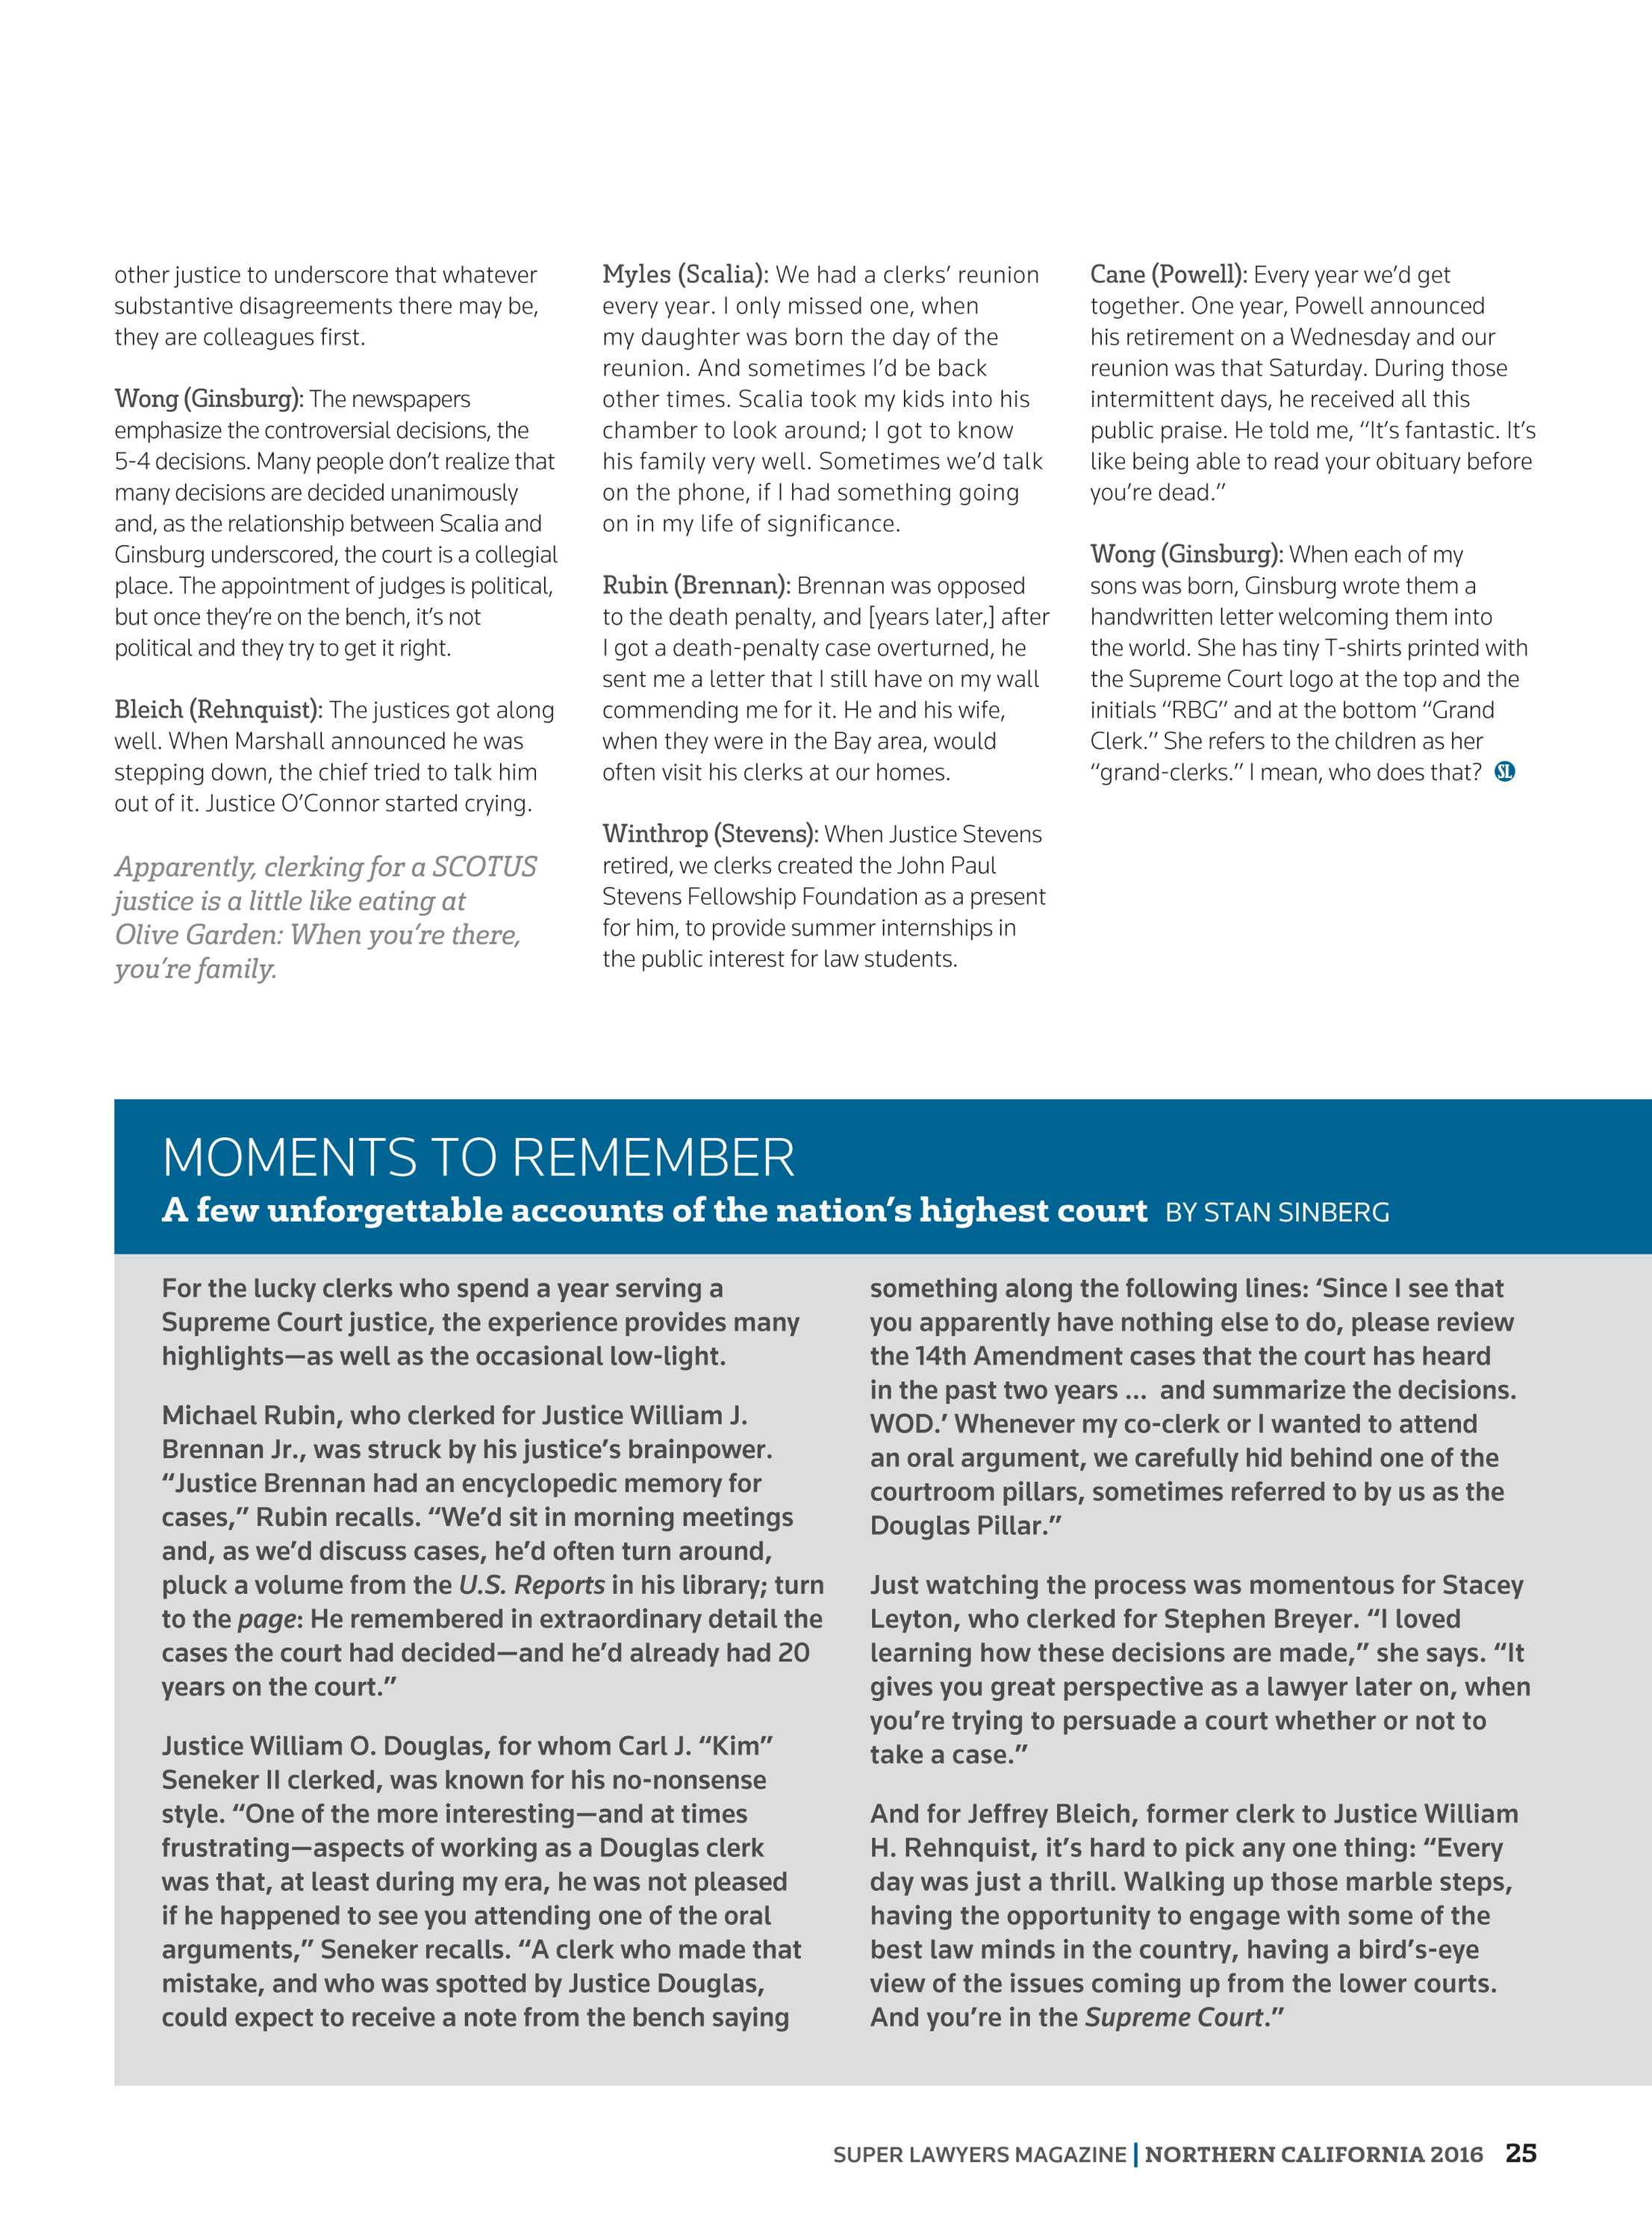 Super Lawyers - Northern California 2016 - page 25